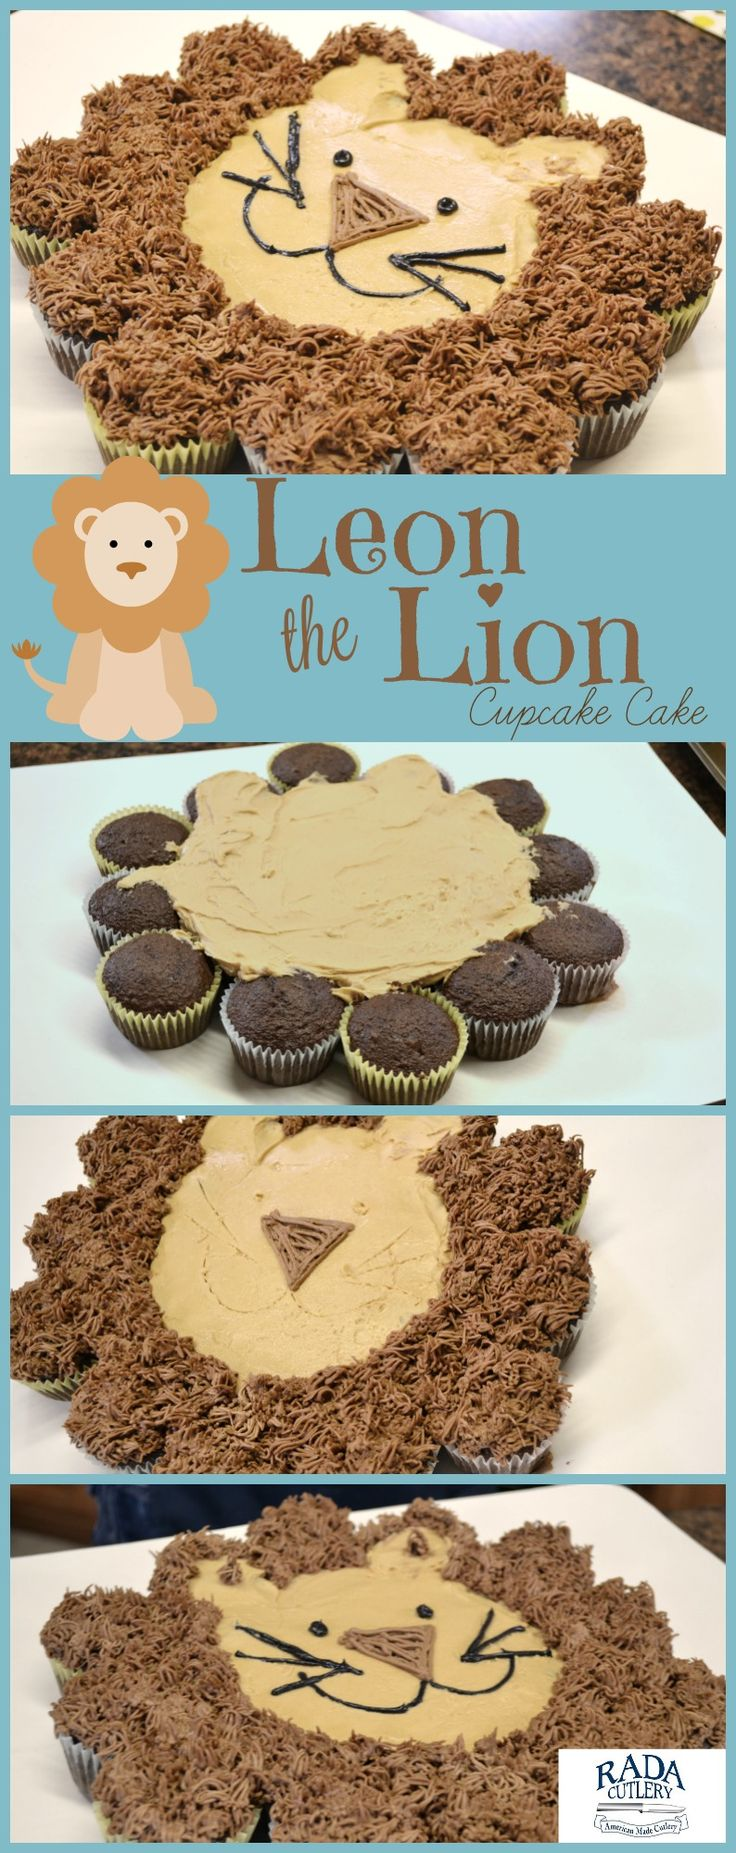 Looking for a great cupcake idea that would be fun for both kids and adults? Then look no further than Leon the Lion! Leon is a friendly lion, but he's also a cupcake cake, one that's easy to make and certain to thrill everyone who sees it. #cupcake #cake #birthday